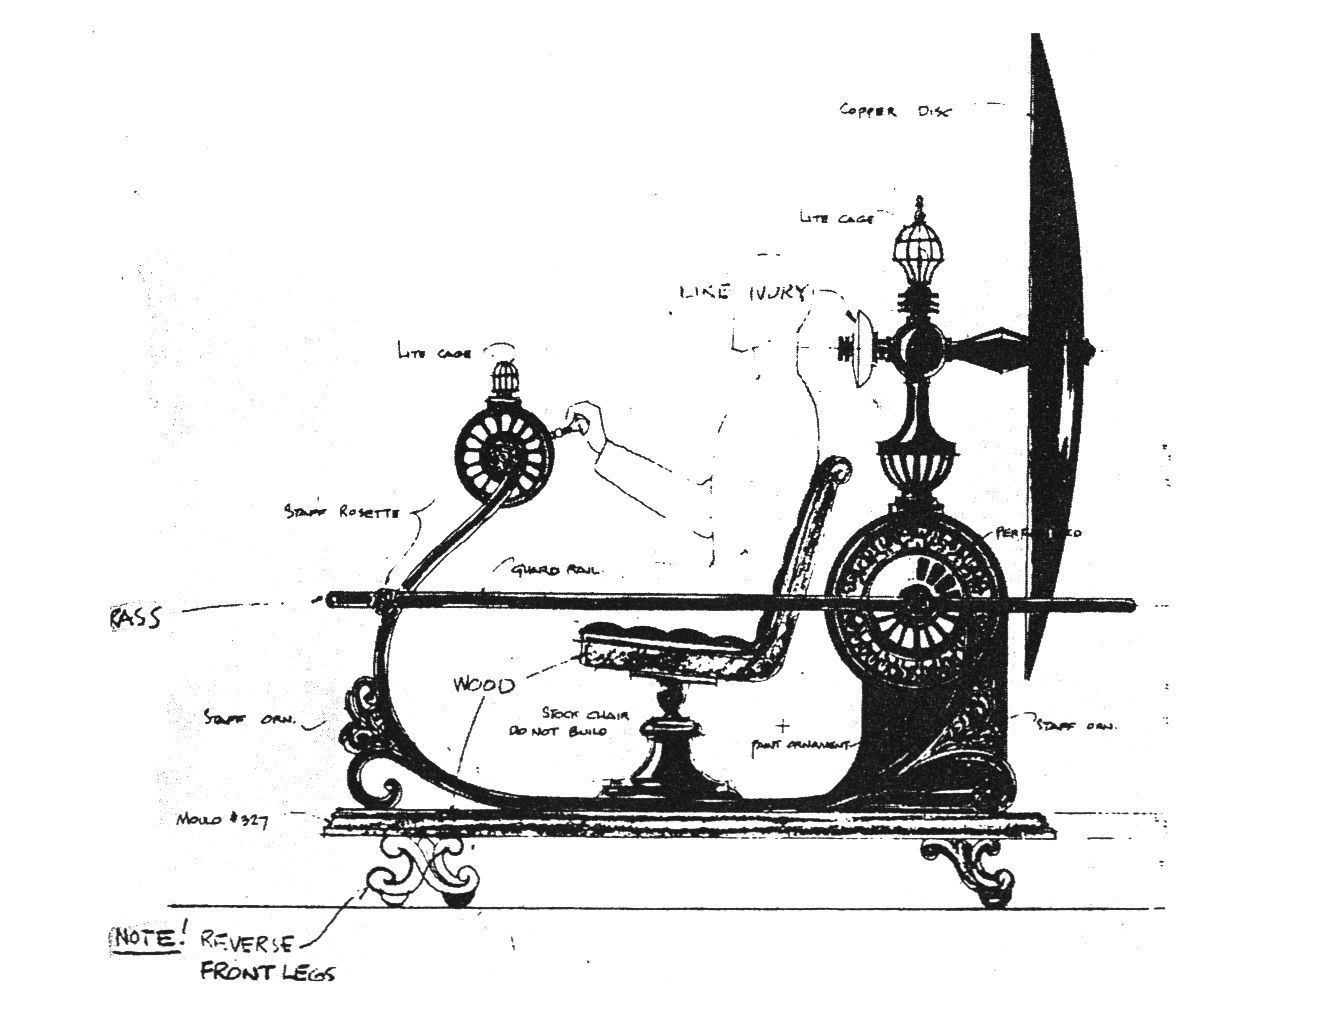 Blueprint Time Machine sideview, made by William Ferrari | The Time